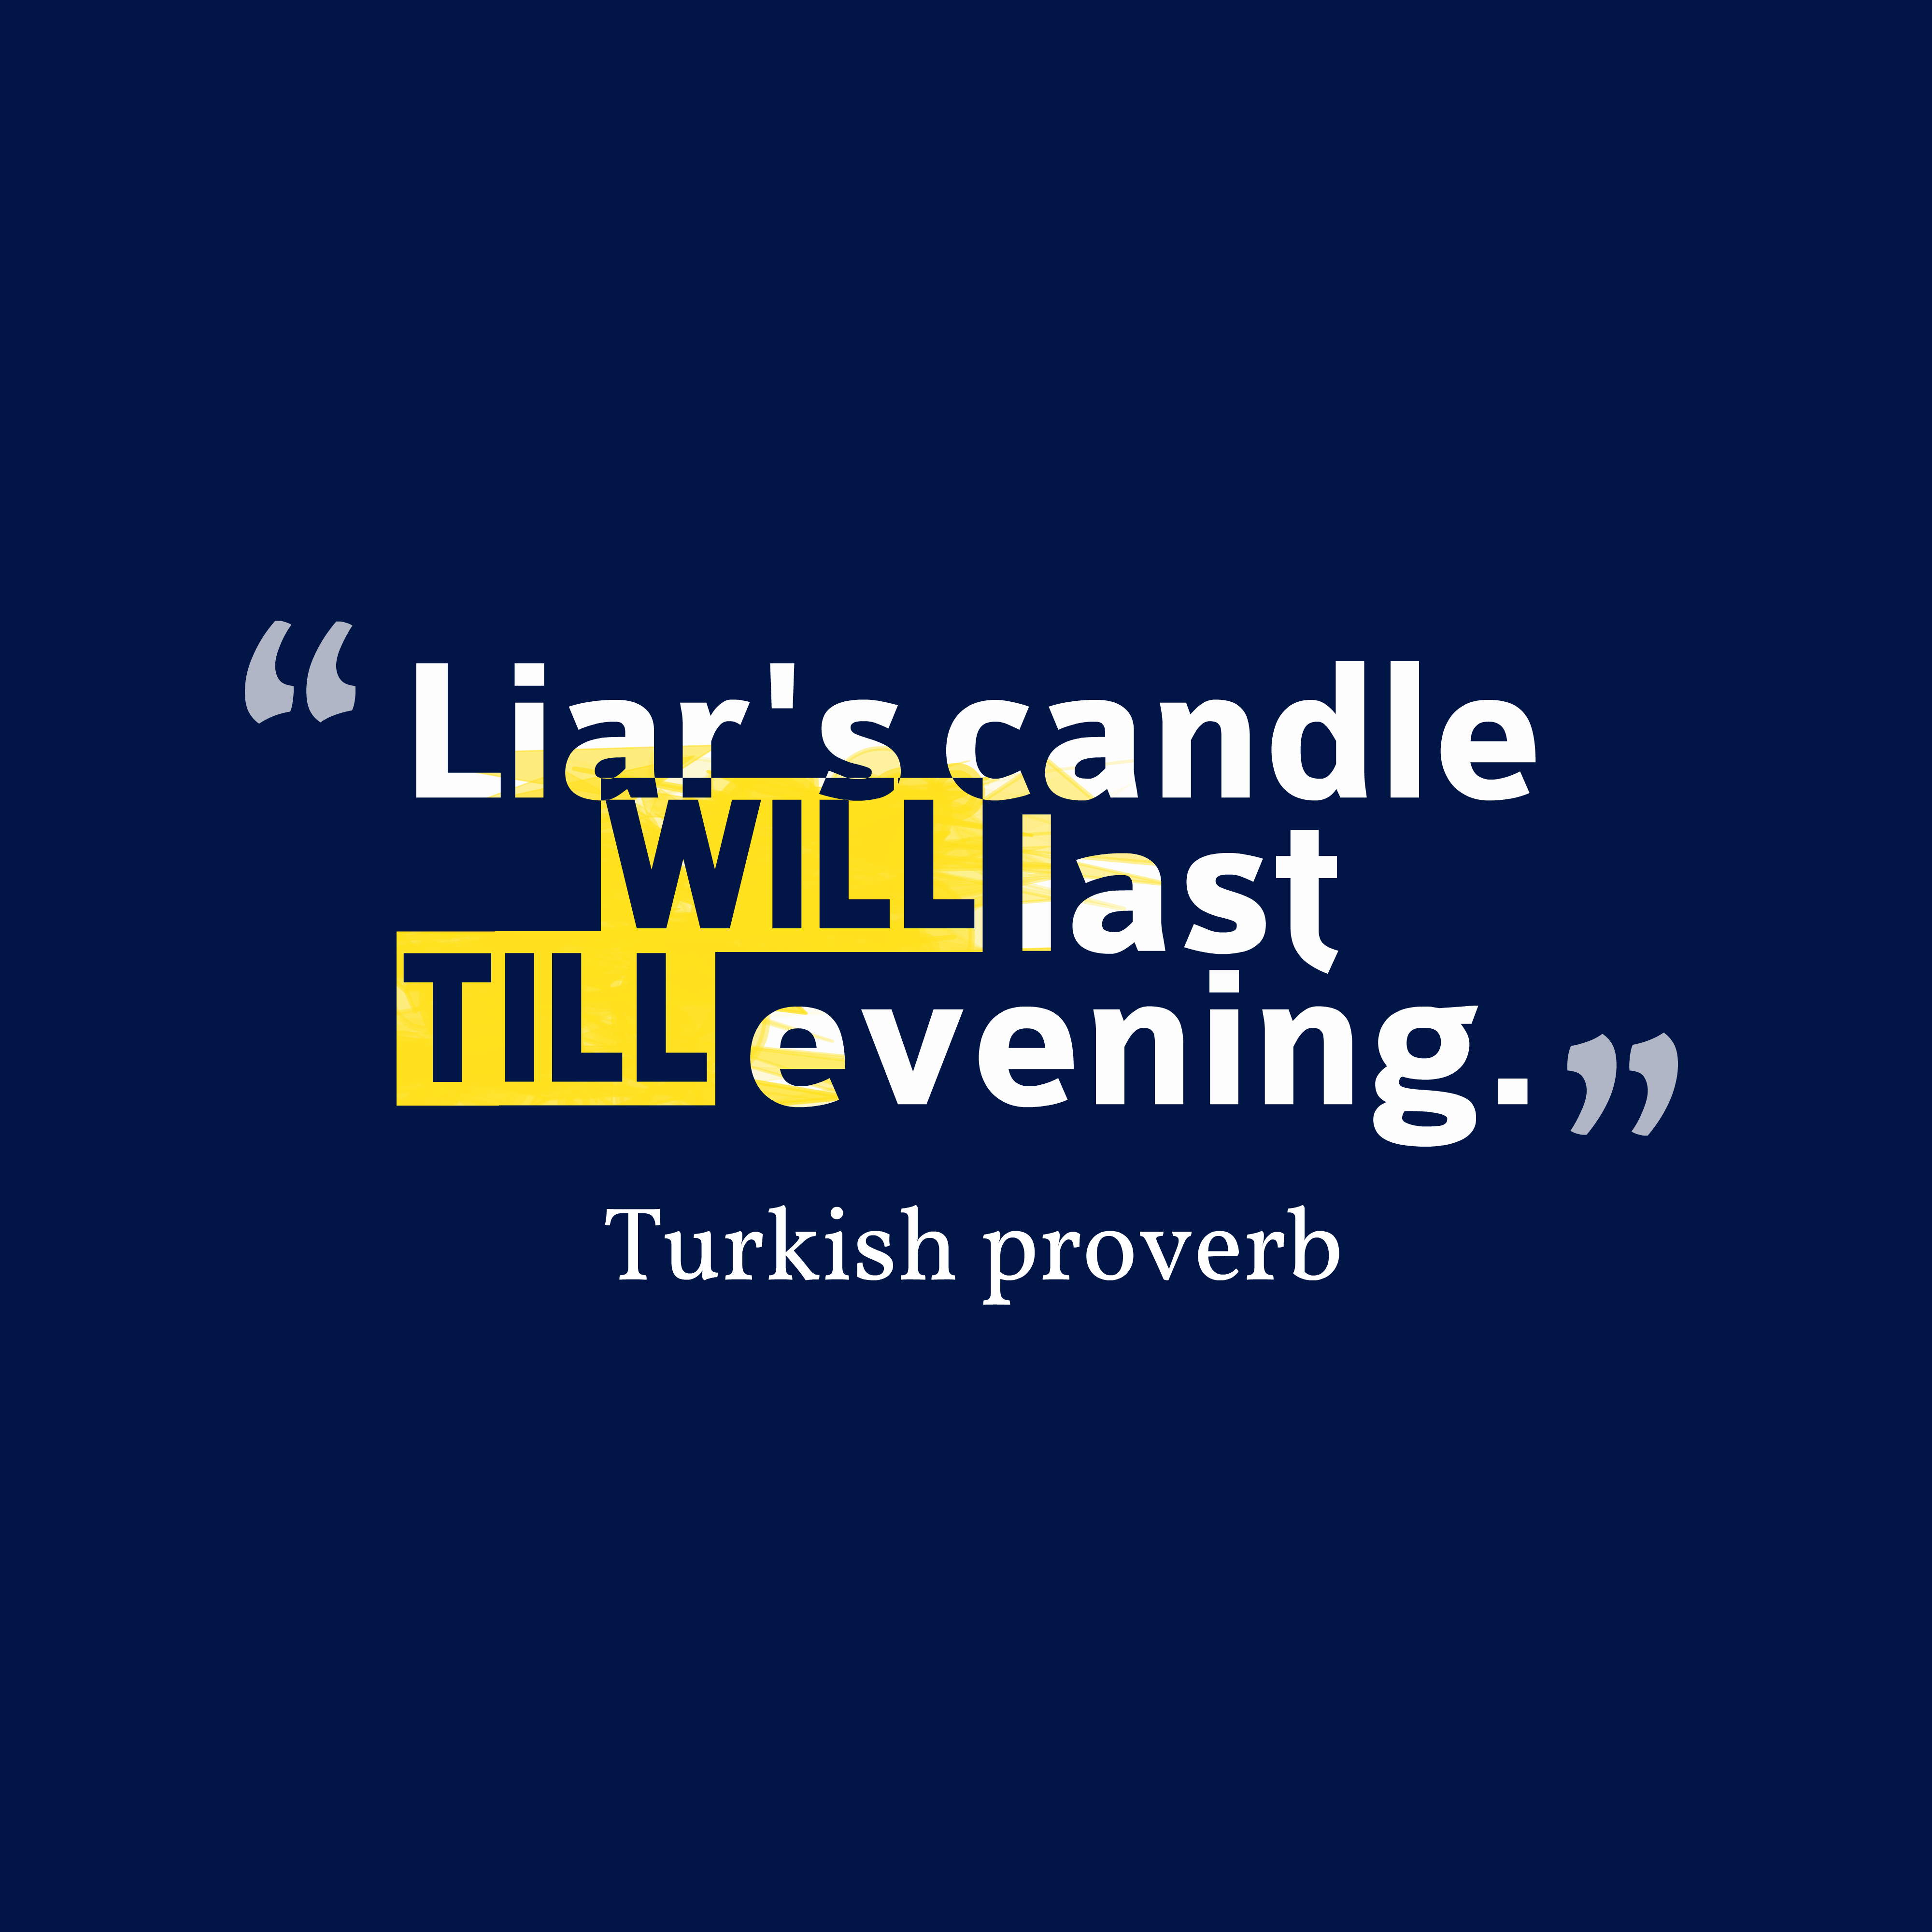 Quotes About Friendship In Turkish : Get High Resolution Using Text From Turkish  Proverb About